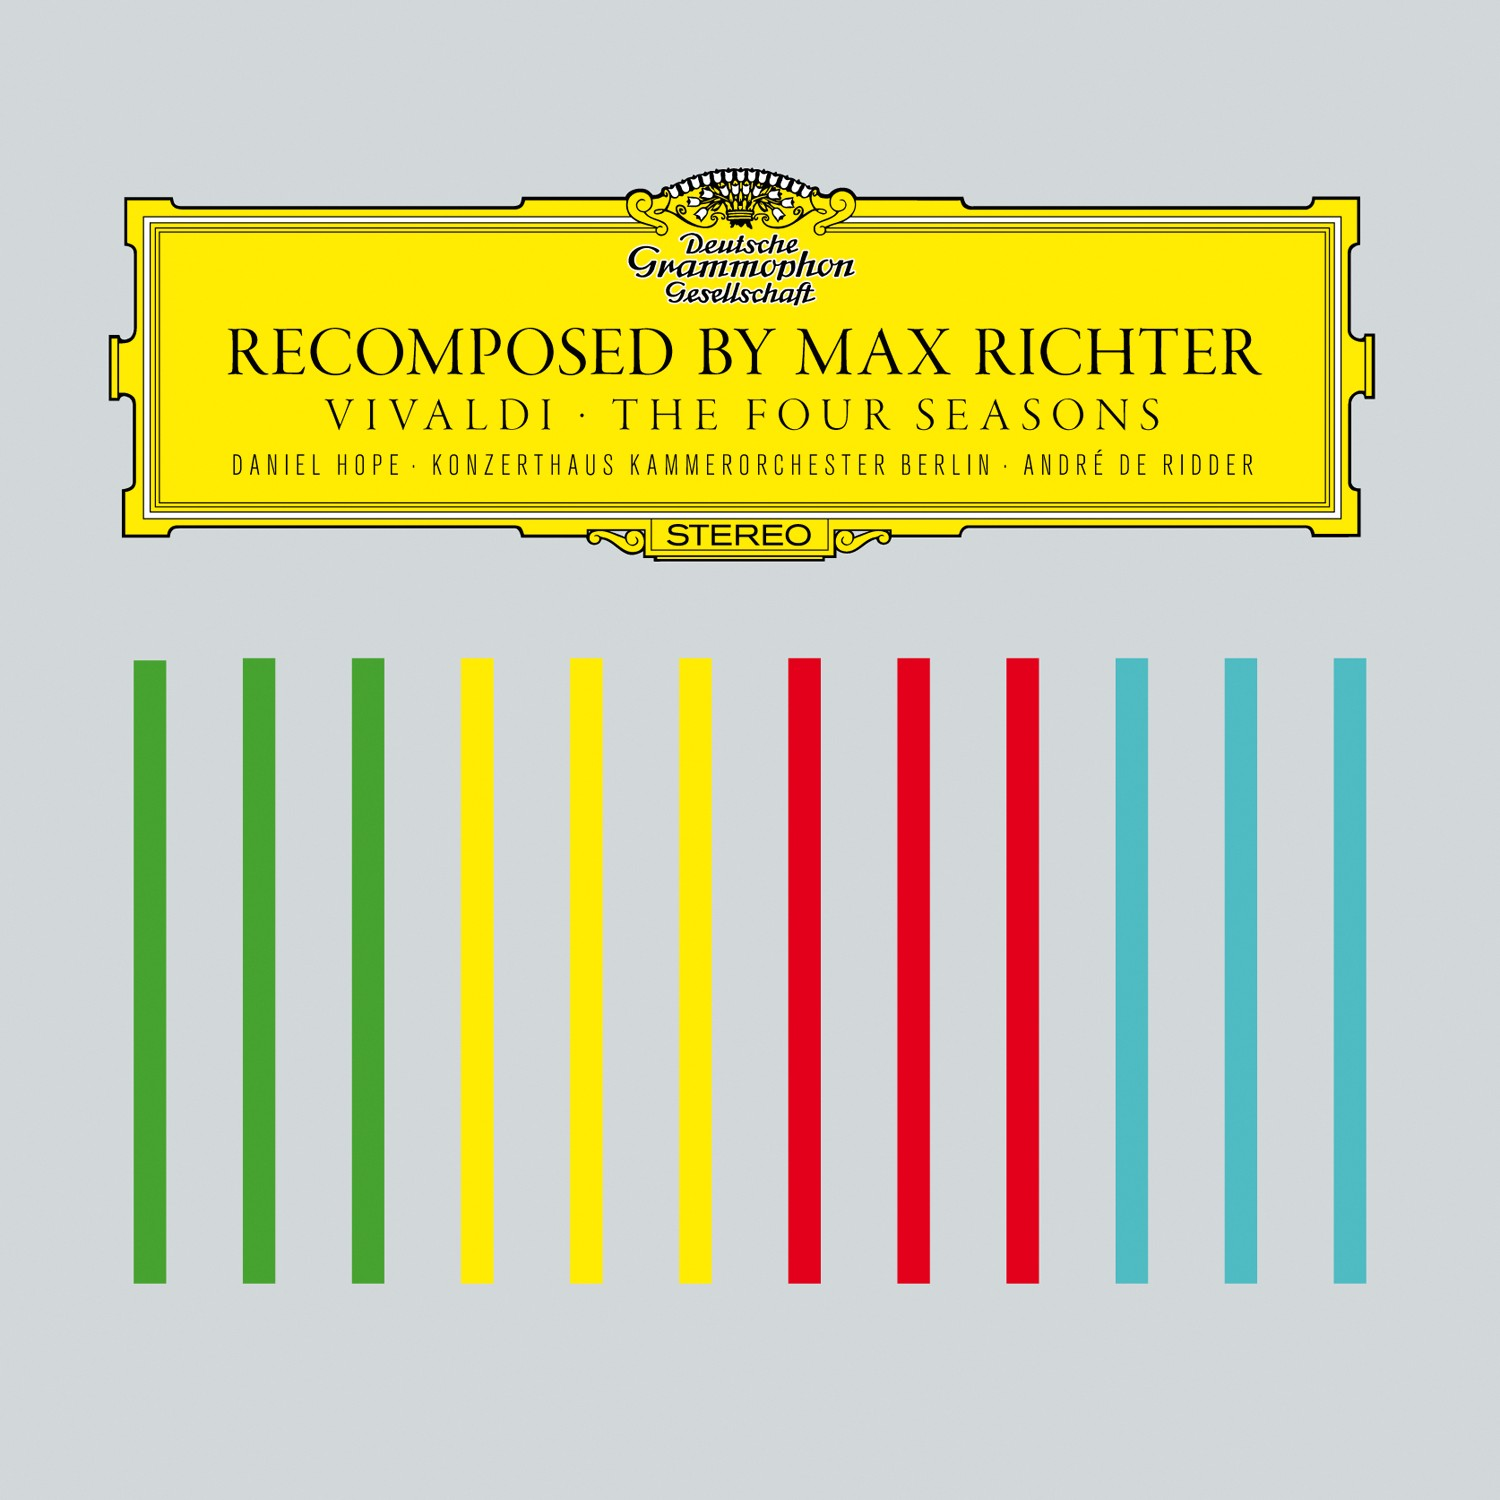 Vivaldi-The-Four-Seasons-Recomposed-by-Max-Richter-